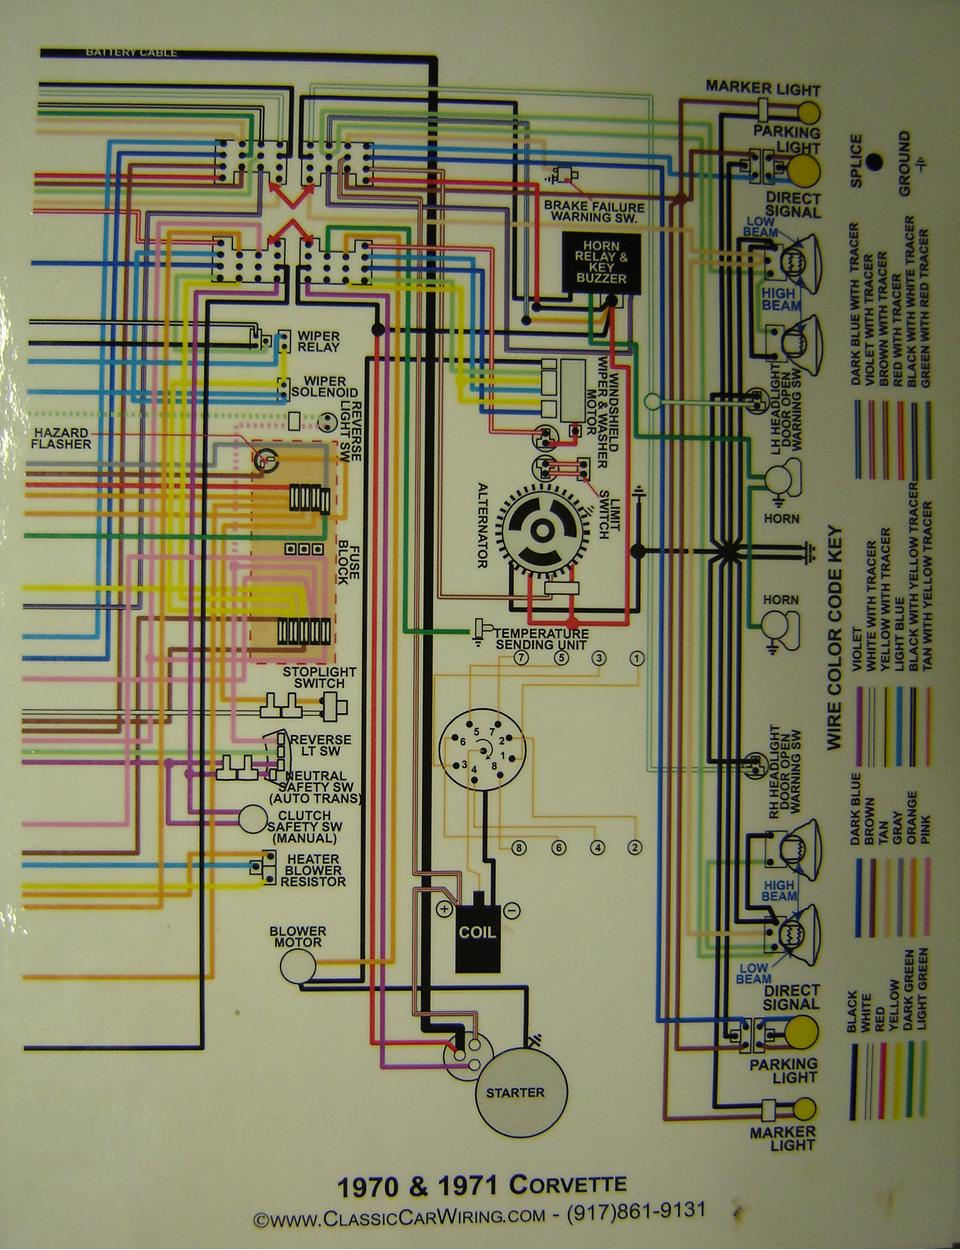 1970 71 corvette color wiring diagram B 1984 corvette wiring diagram free 1986 corvette wiring diagrams 1998 corvette wiring diagram at et-consult.org